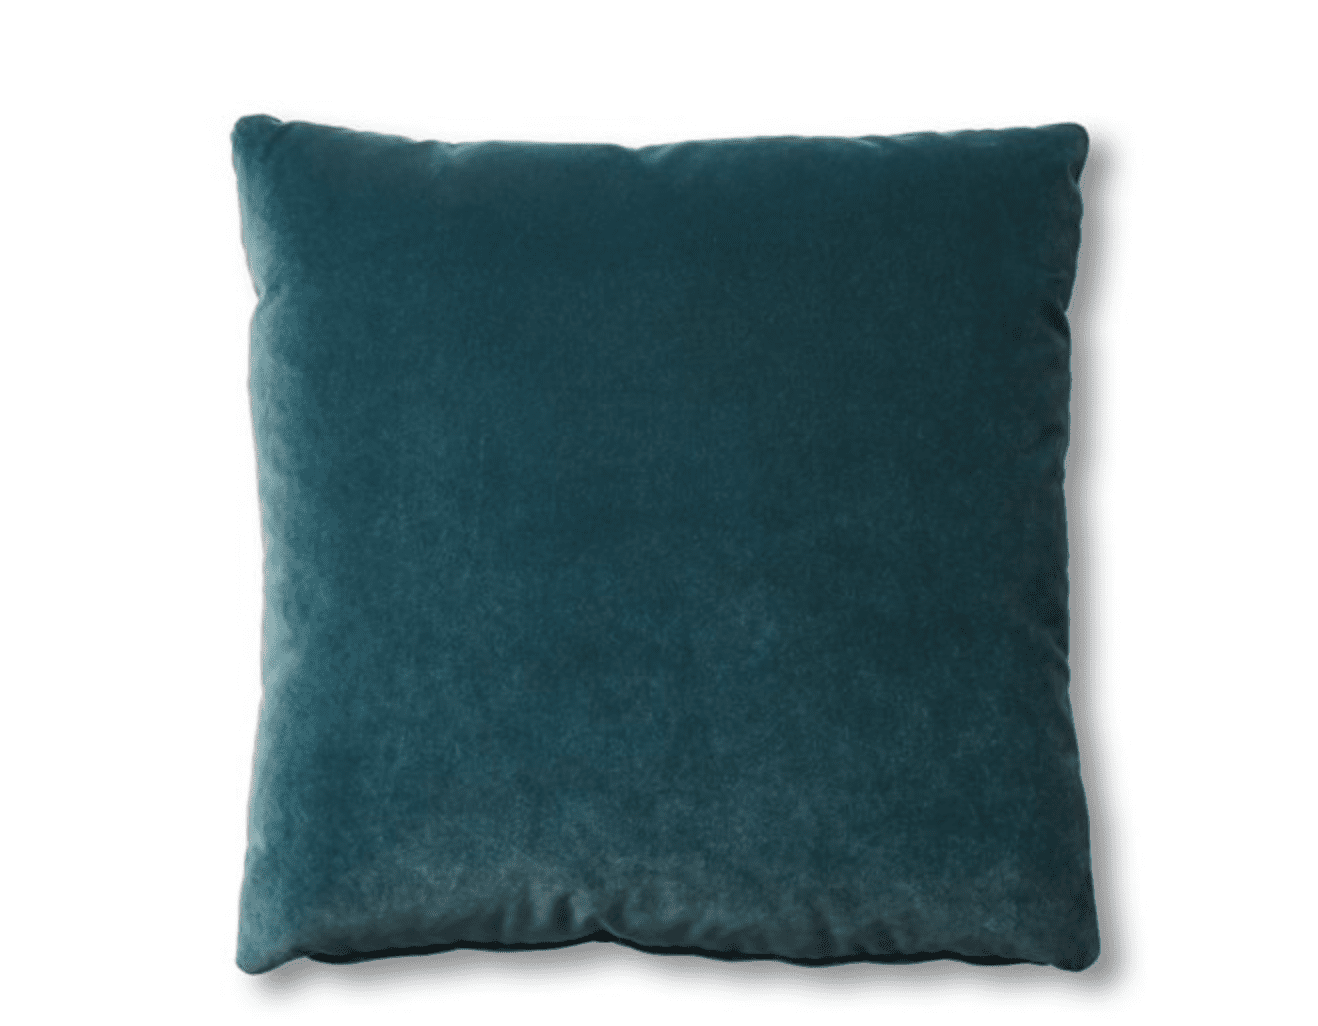 Hazel Pillow, Teal Velvet